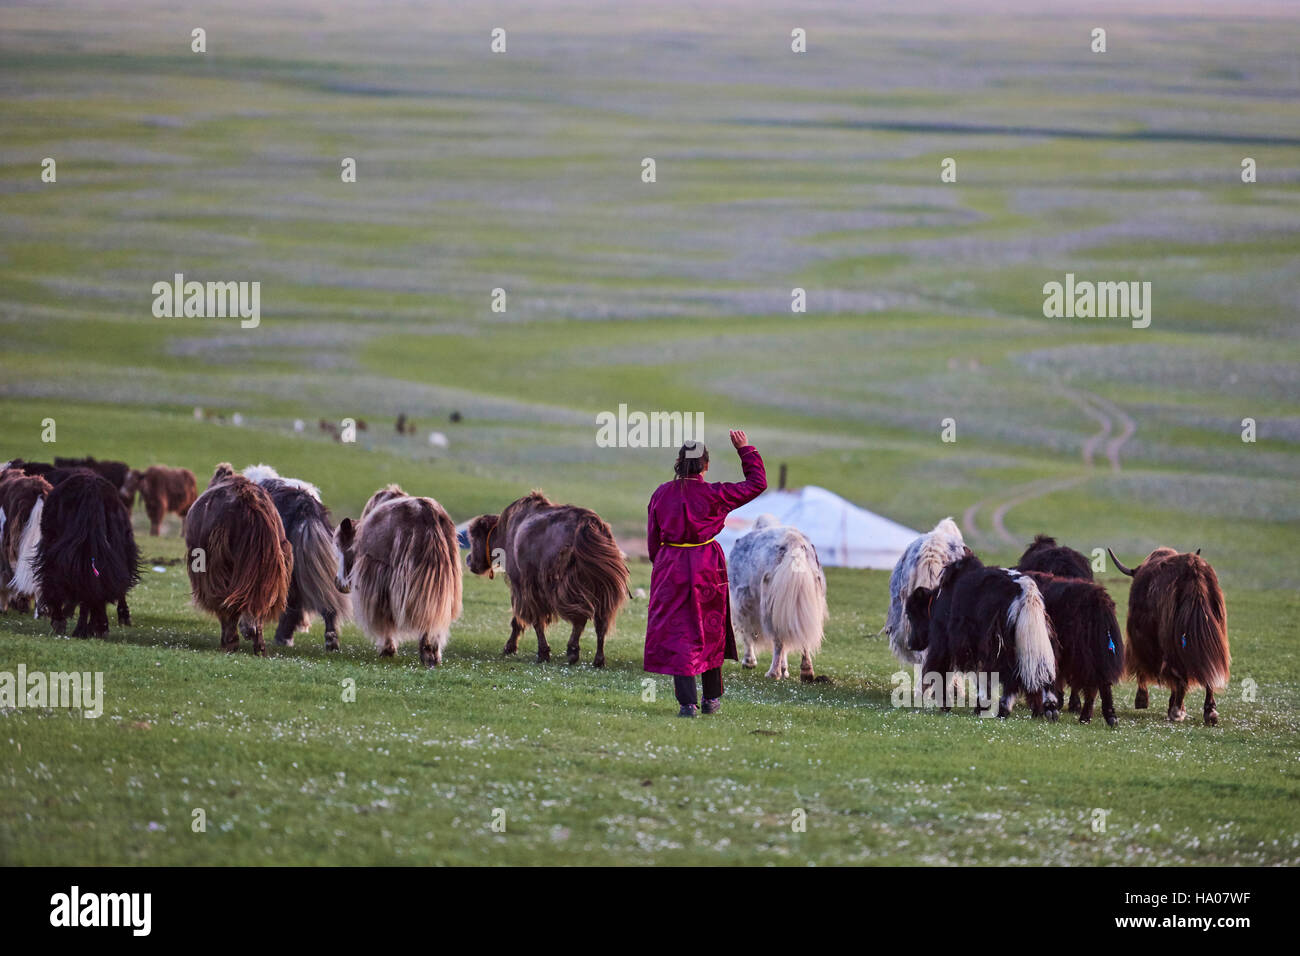 Central Asia Independent Mongolia Asia travel travel destination world culture word destination yak milking veau - Stock Image